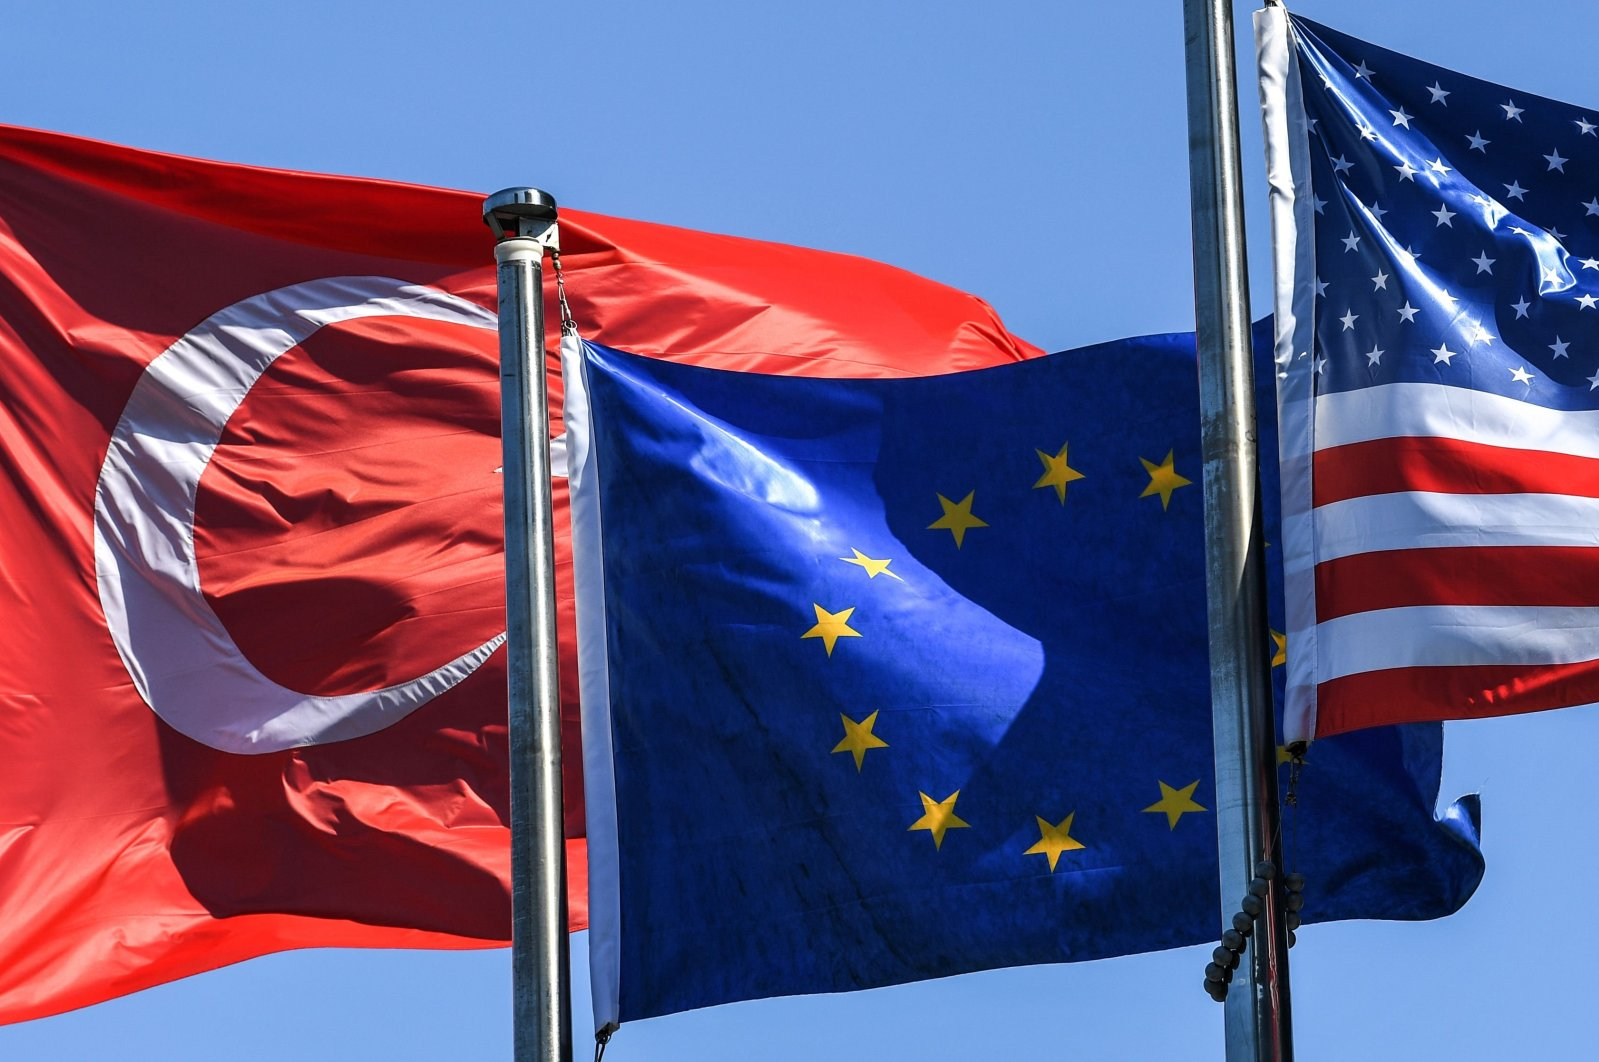 The flags of Turkey, the European Union and the U.S. flutter in Istanbul's financial and business district Maslak, Turkey, Aug. 15, 2018 (AFP Photo)